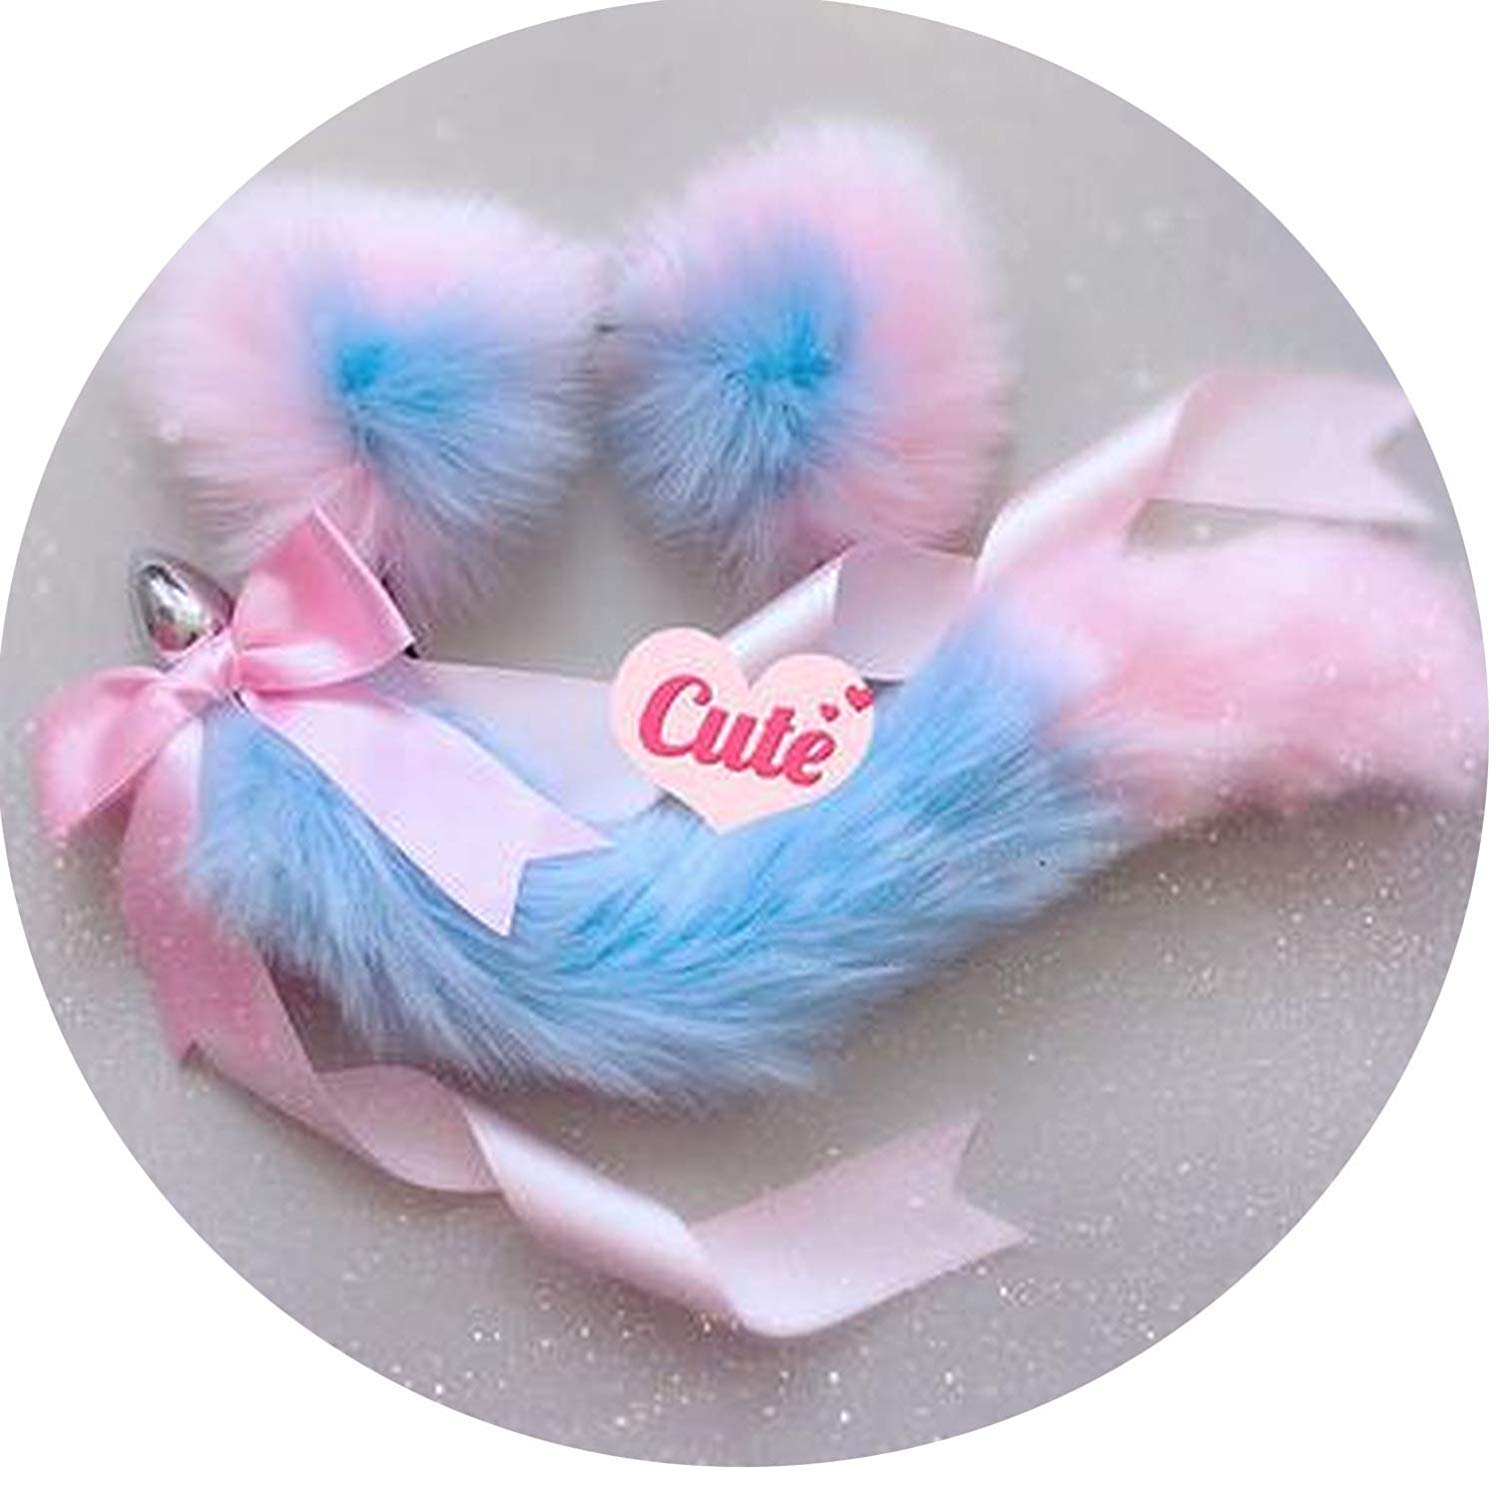 Shirt-EDXSE Cute Soft Cat Ears HeadBūtt Mum Plug Exciting Cosplay Accessories AlluRing Happy Toys for Couples,Blue Pink